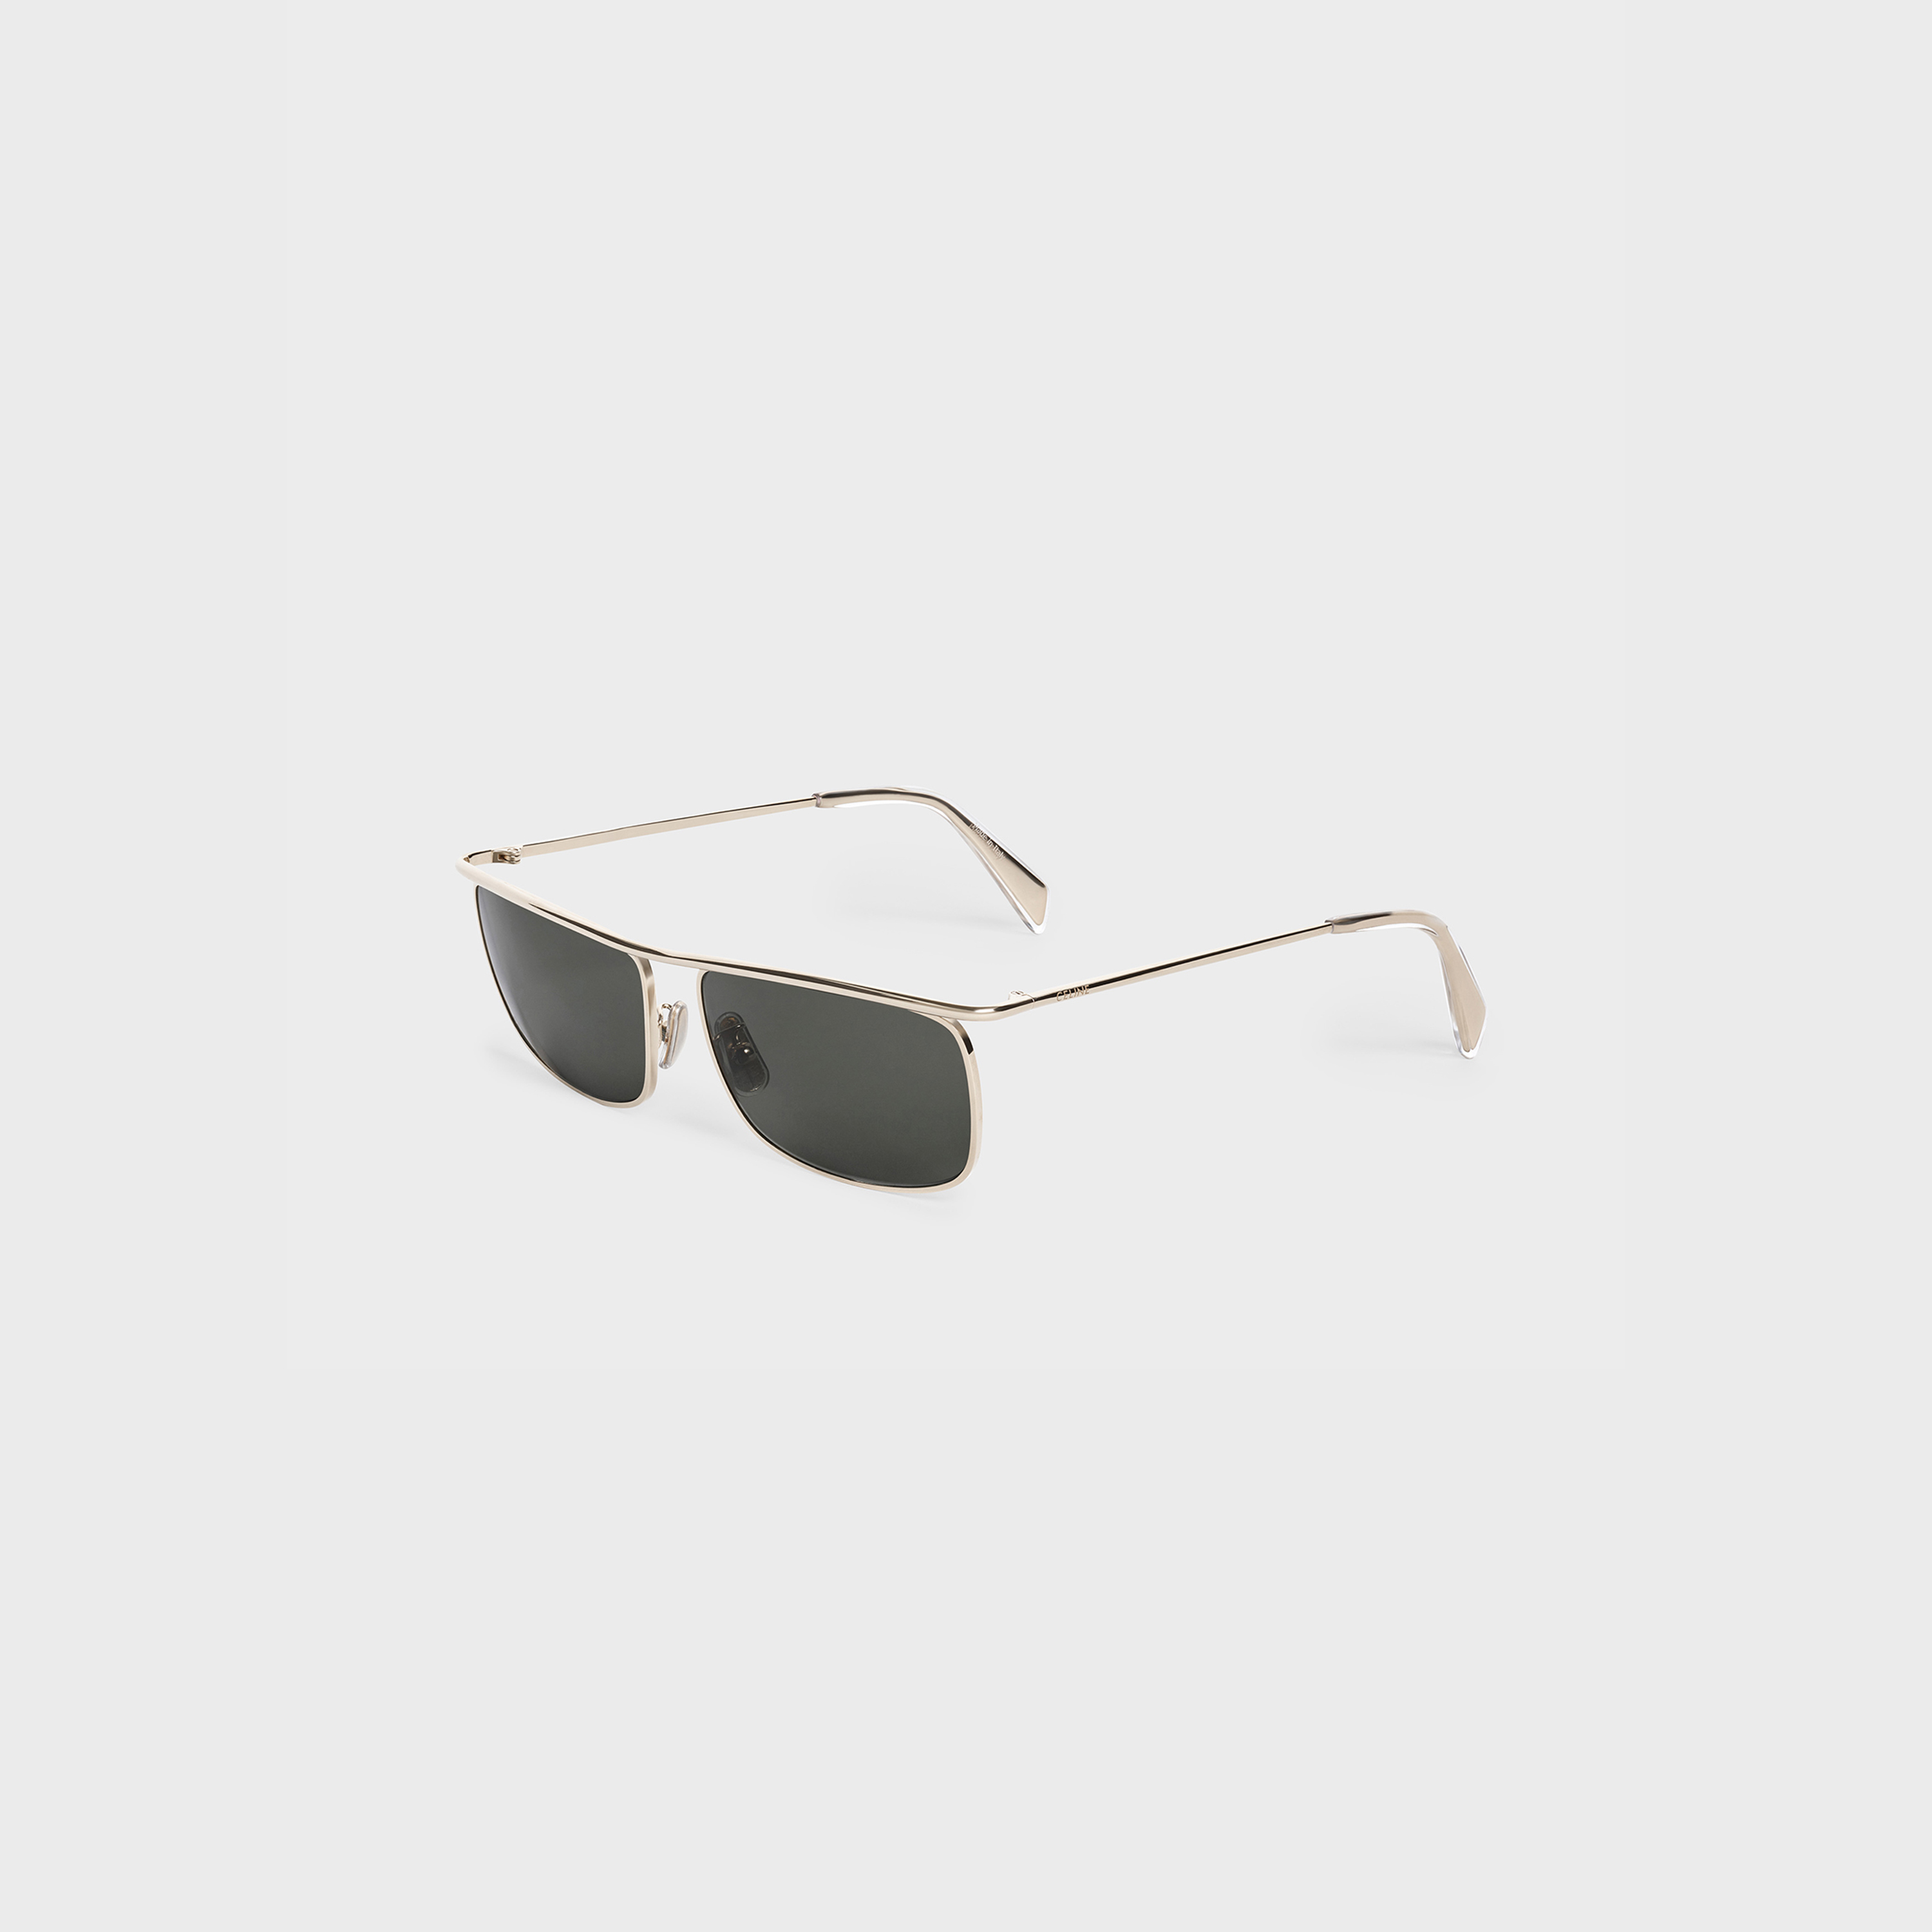 Metal Frame 07 Robbie Sunglasses in Metal | CELINE